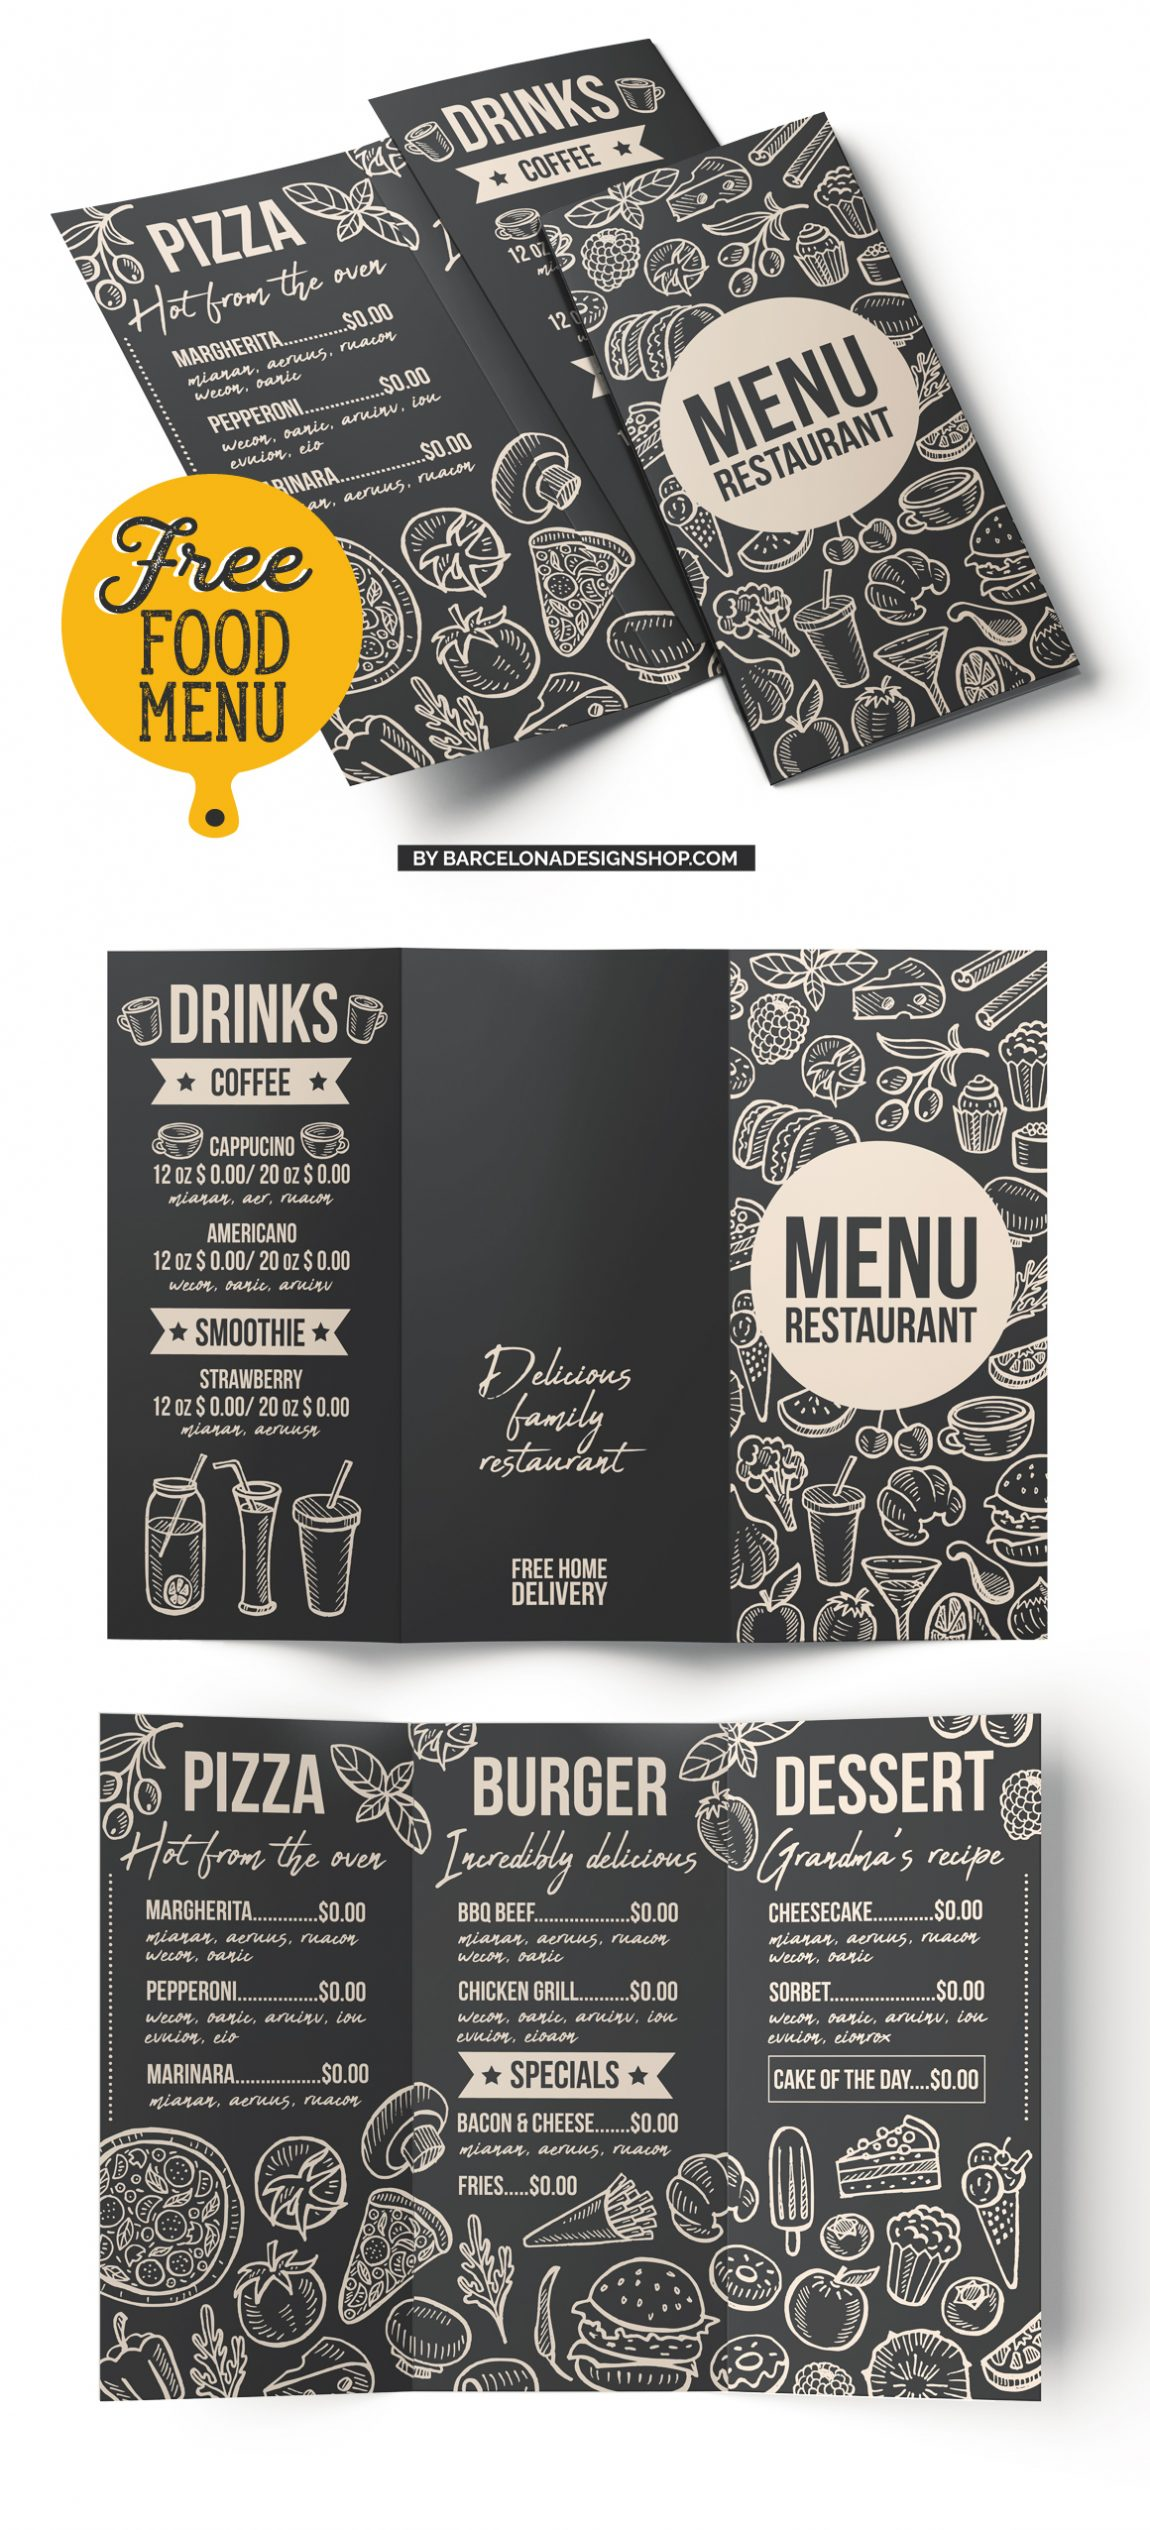 free food menu template restaurant photoshop psd burger pizza donwload